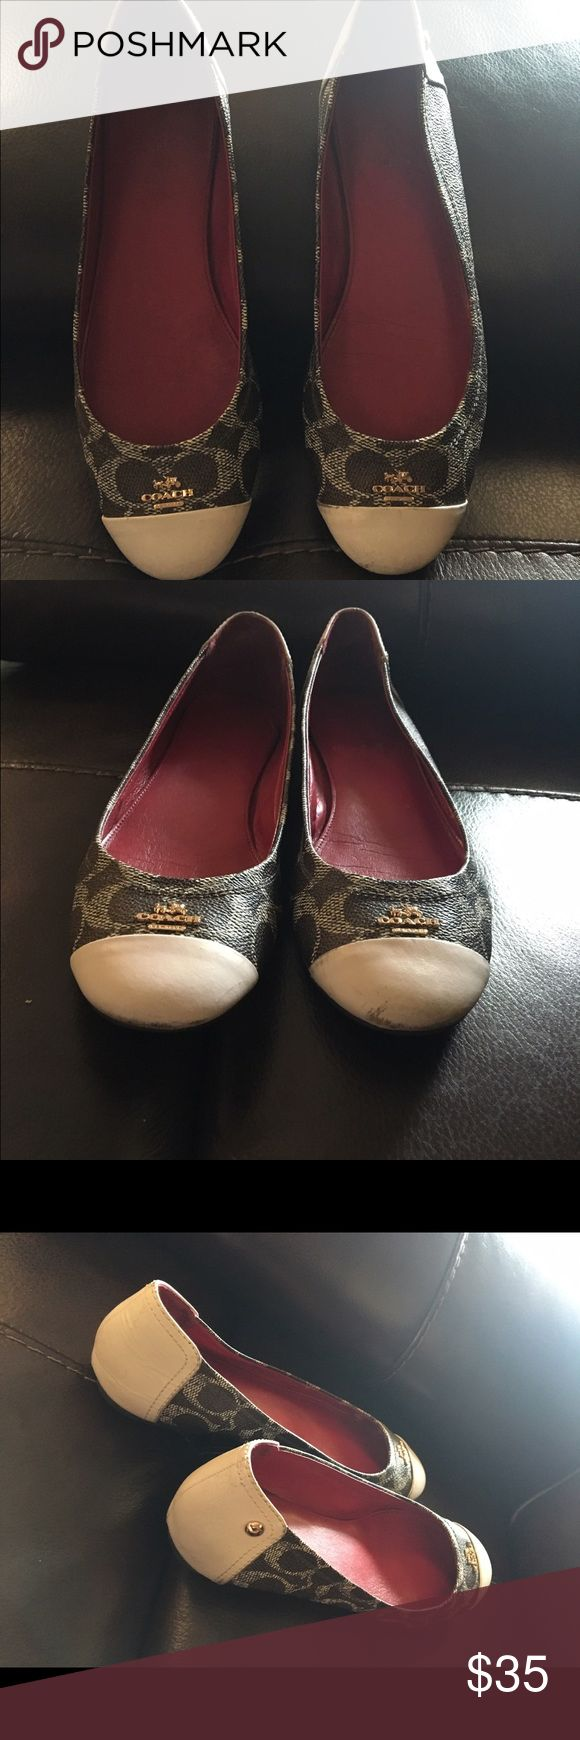 Brown and white Coach shoes Cute Coach shoes. The white part is a little scuffed and shows some wear. Nice for work or to dress up a casual outfit. Wore about a dozen times. Coach Shoes Flats & Loafers